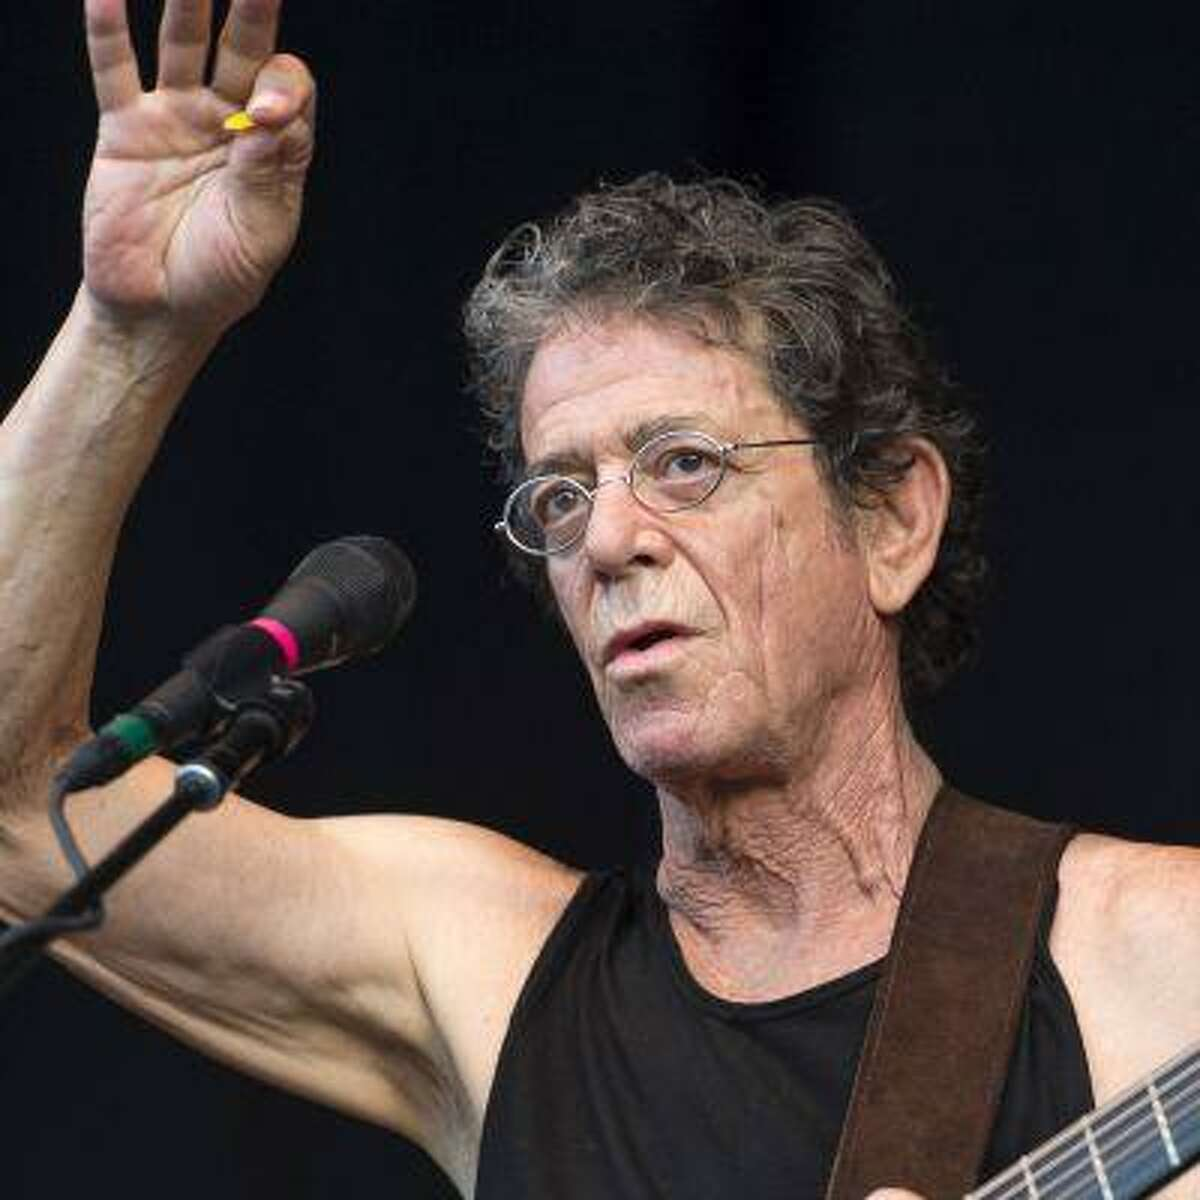 Lou Reed performing live at 'Filmnaechte am Elbufer' event series. Dresden, Germany - 30.06.2012 Credit: WENN.com